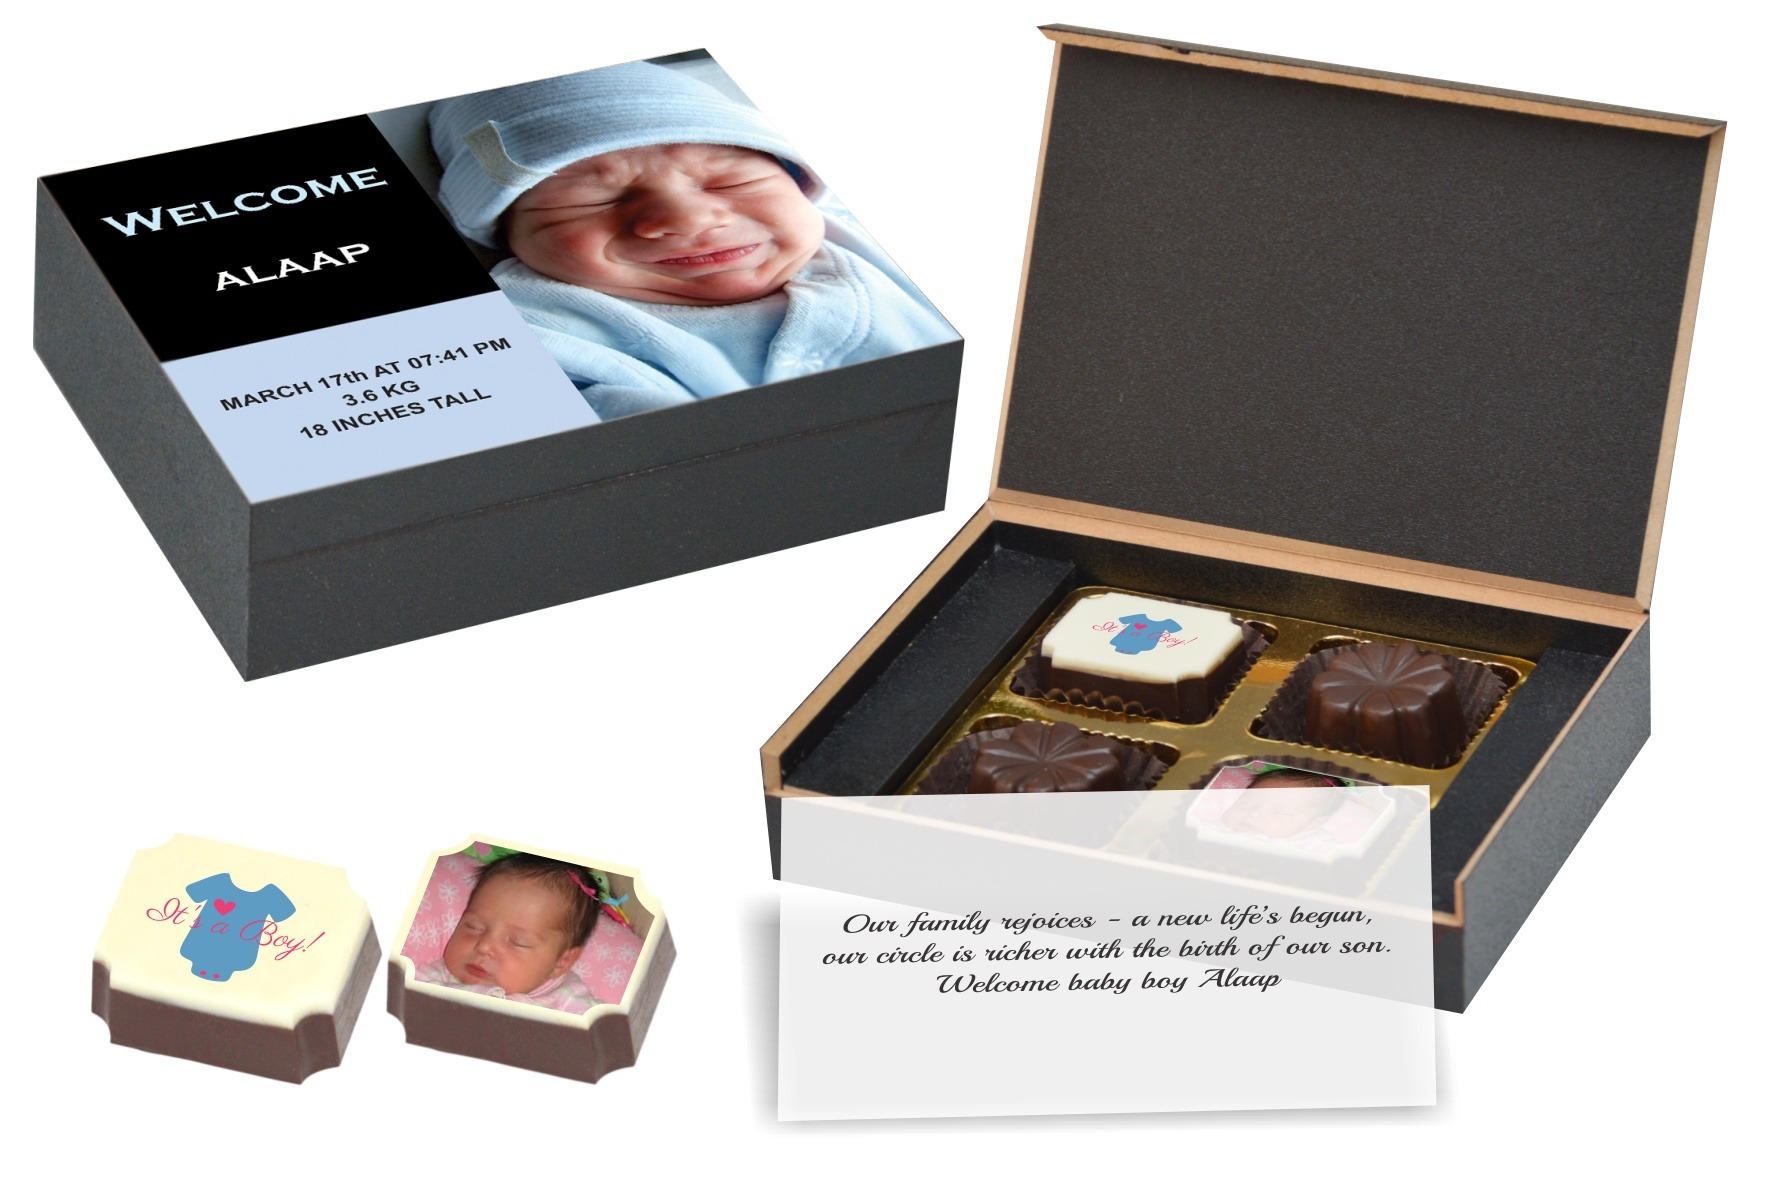 Baby announcement gift box : Birth announcement gifts i new baby